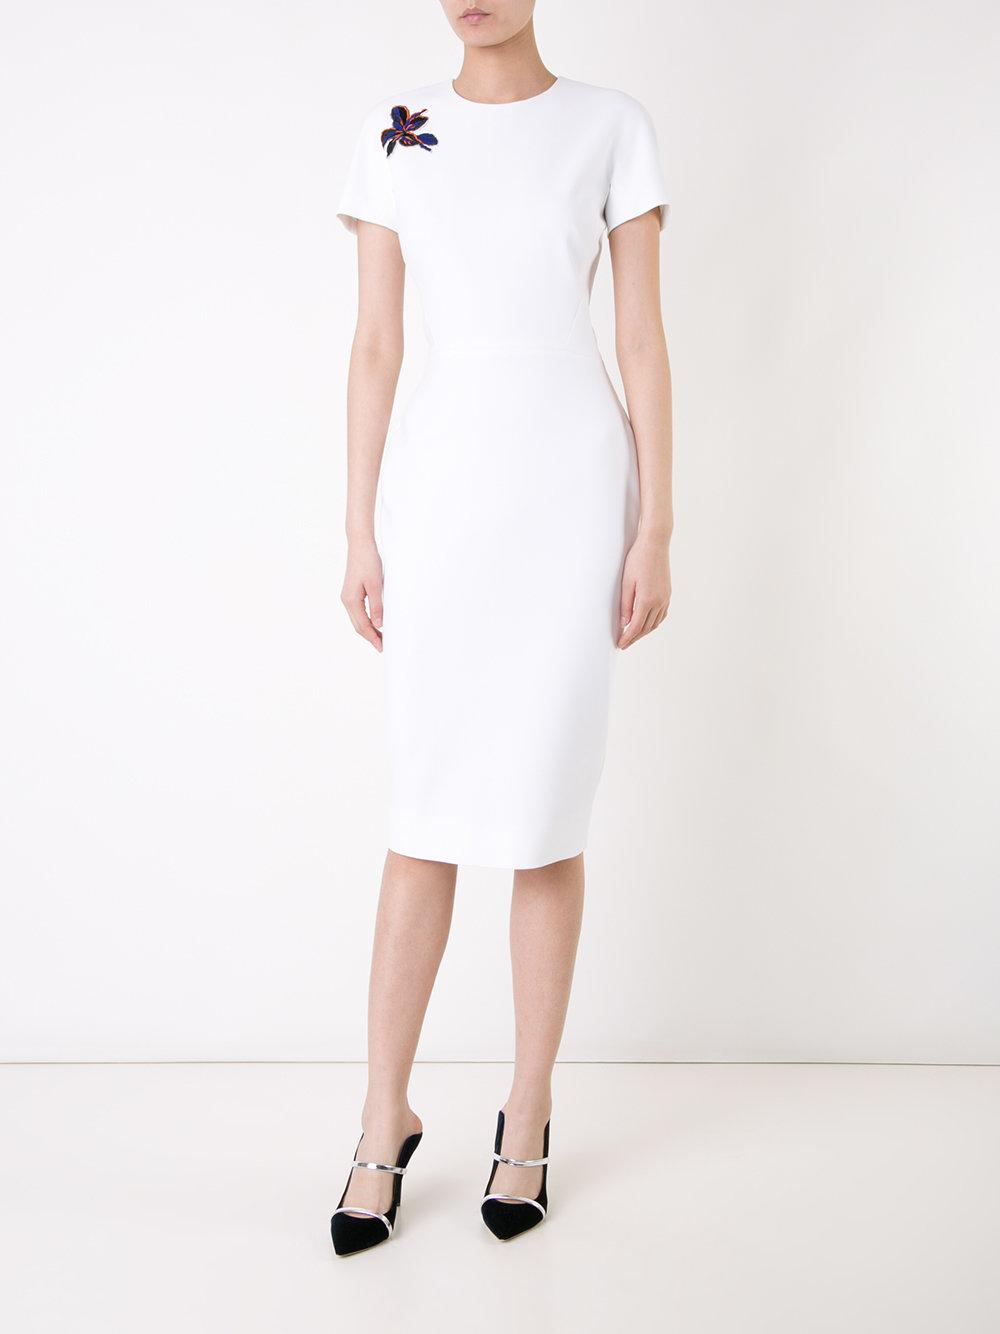 Victoria Beckham Short Sleeved Fitted Dress In White Lyst